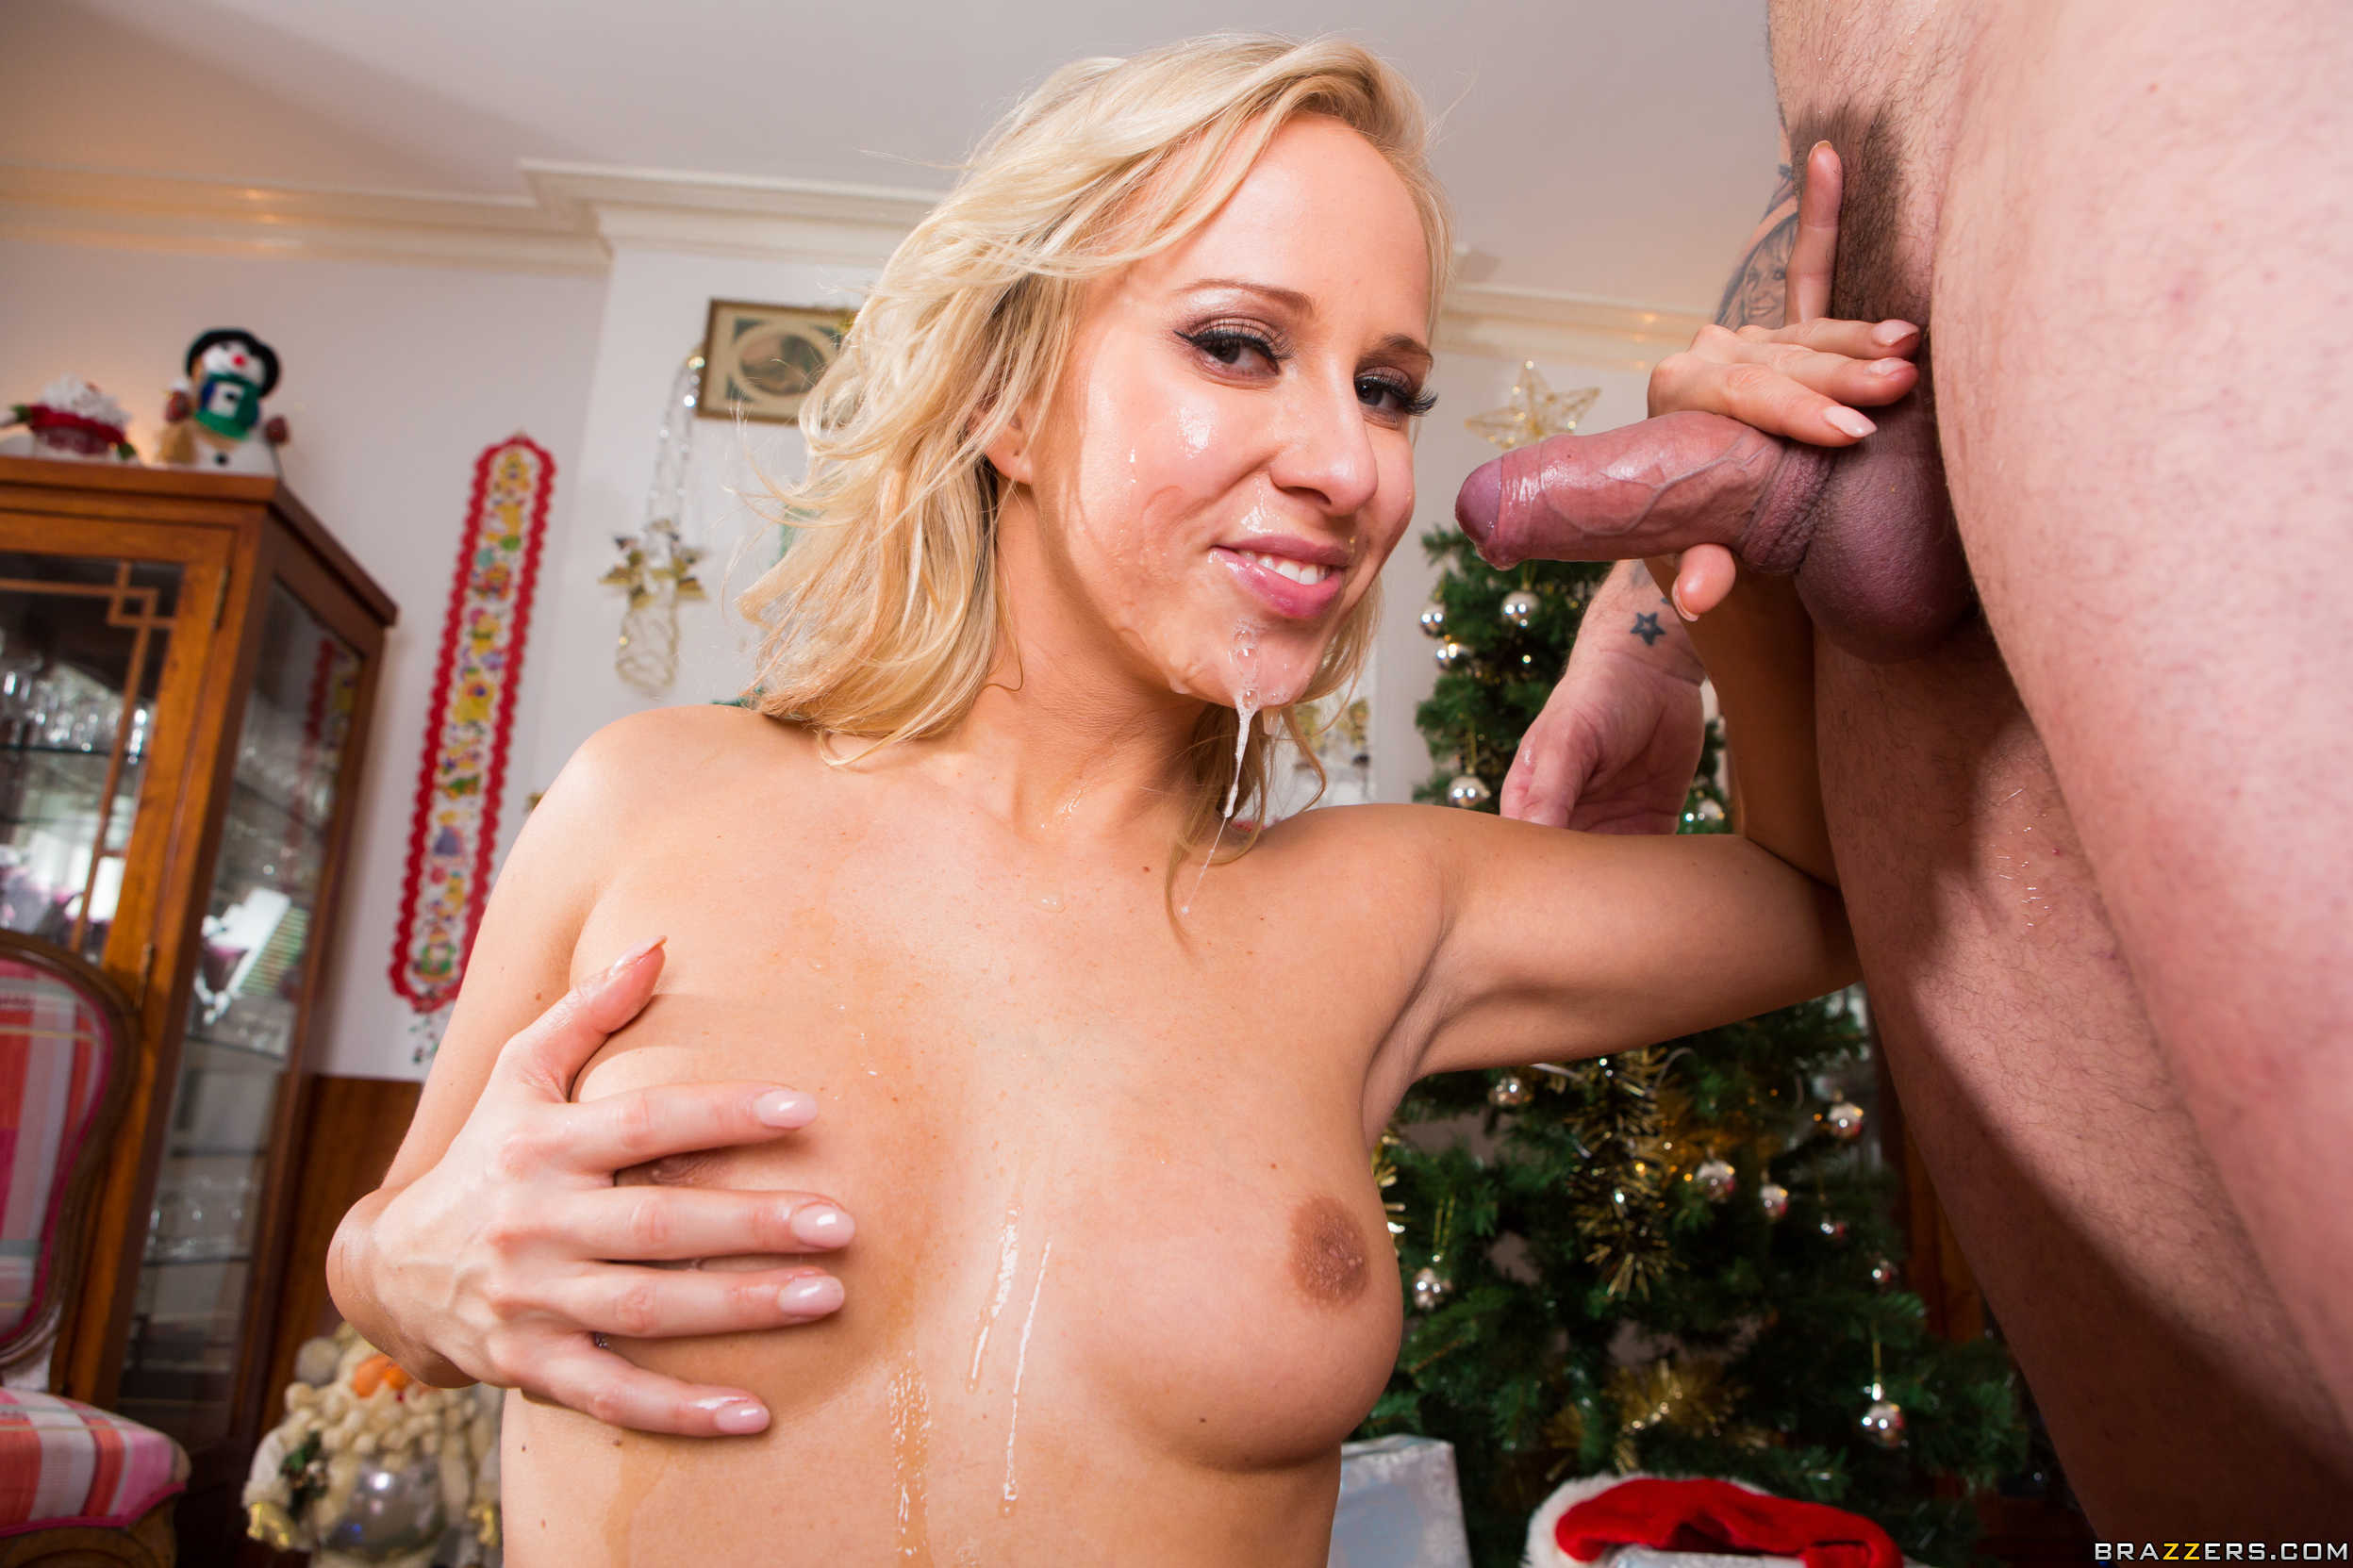 Whipped at the watering hole by superior posh ladies - 1 part 4